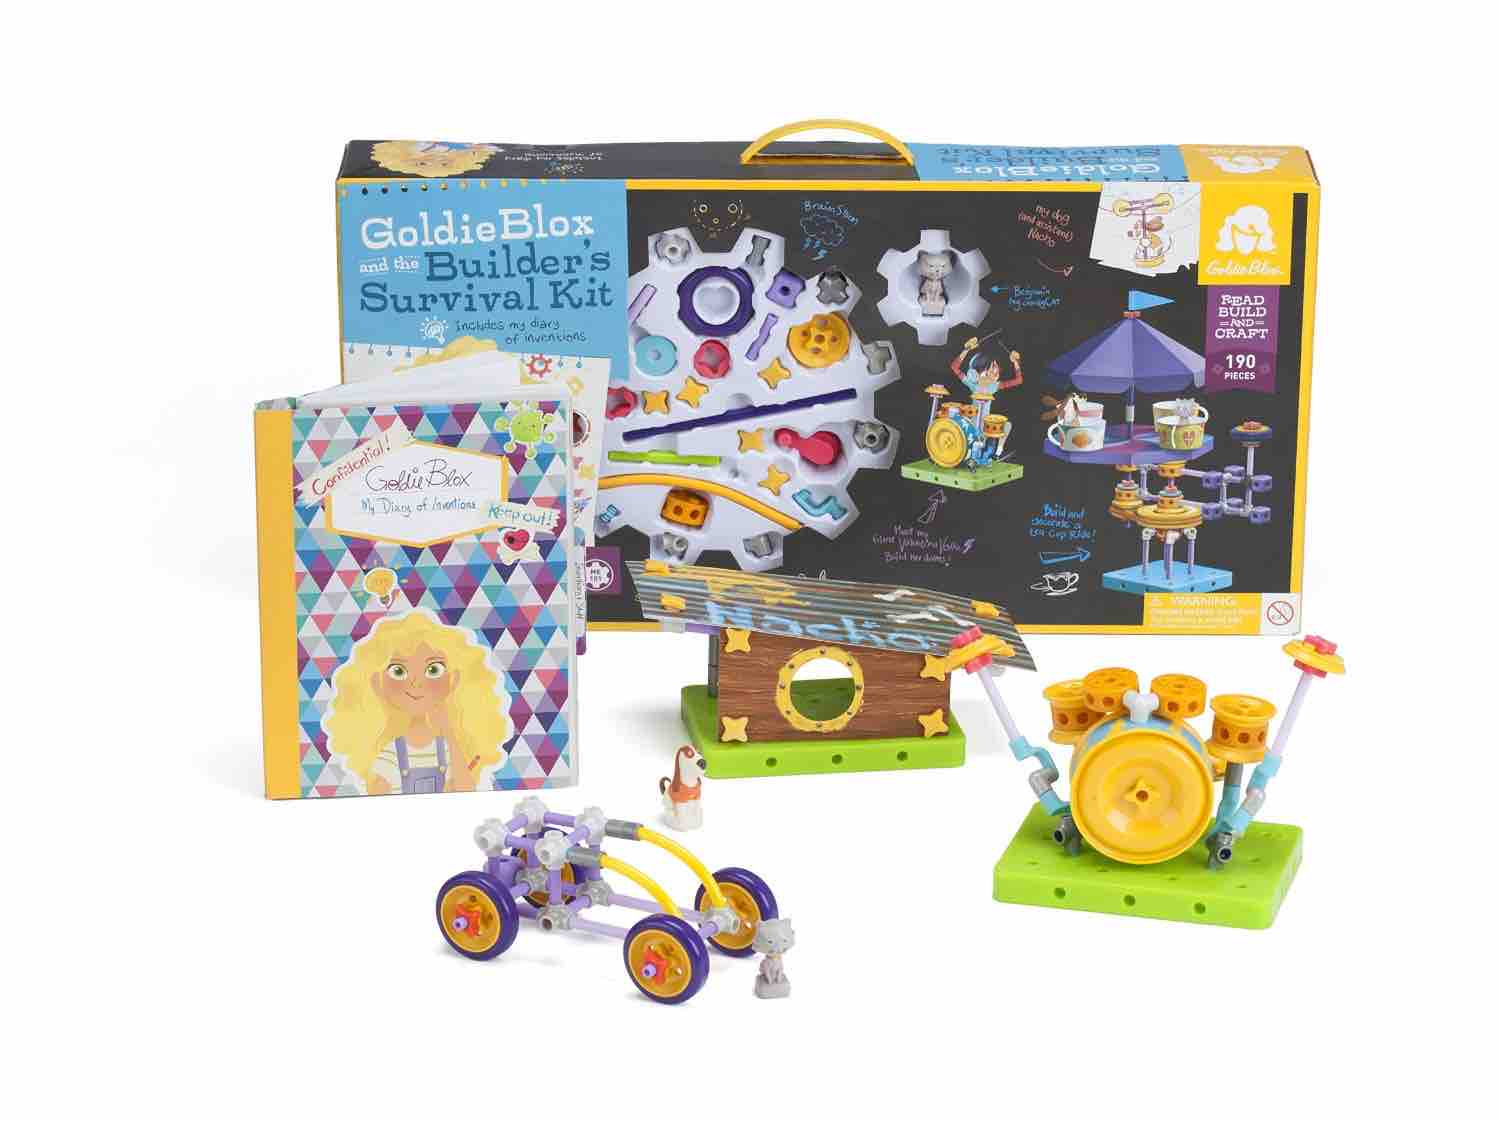 Goldie Blox STEM GIFT Idea